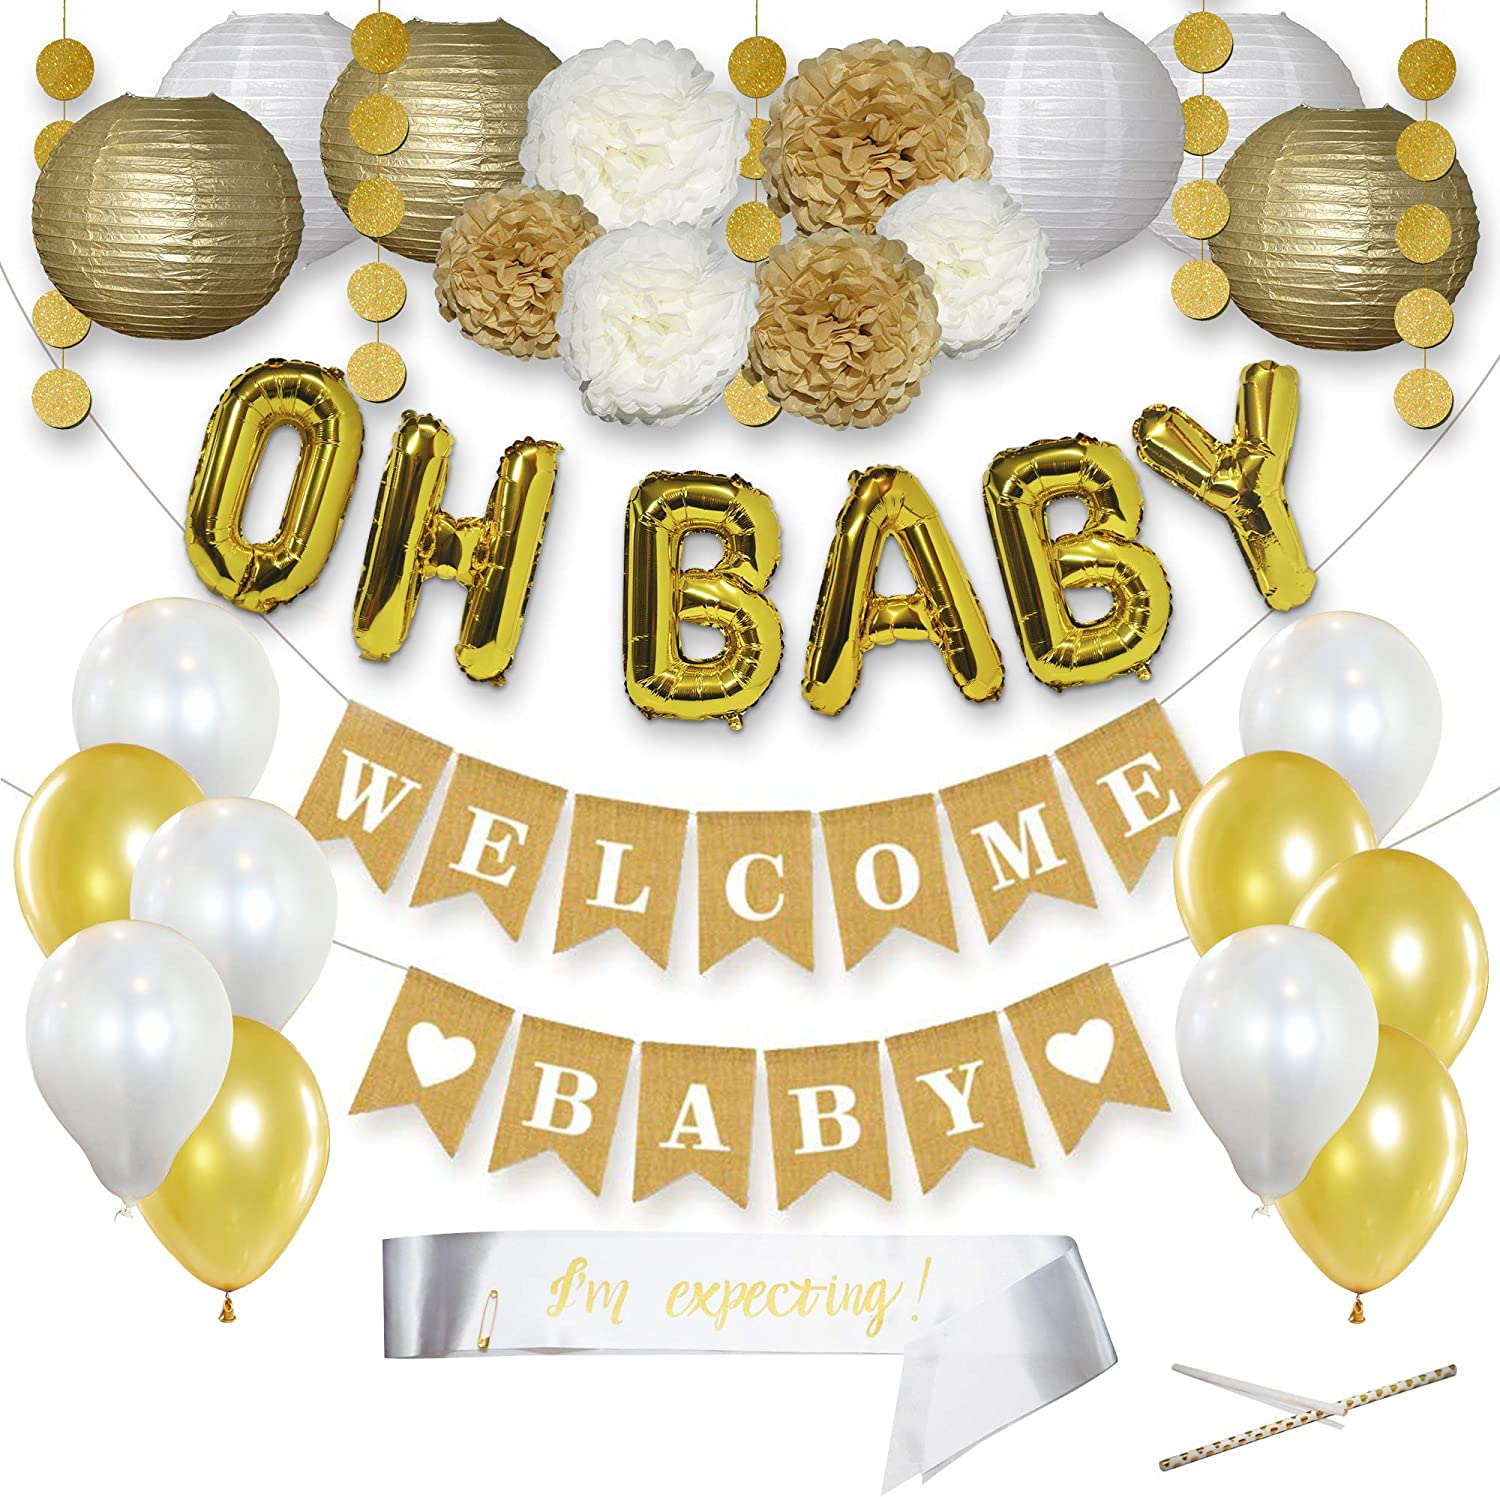 Gender Neutral Baby Shower Decorations, Sash, Balloons, Gold Letters Balloons, Banner, Pom Poms, Lanterns, Gold Party Decorations, Baby Shower Decorations for Boy, 32 Pieces